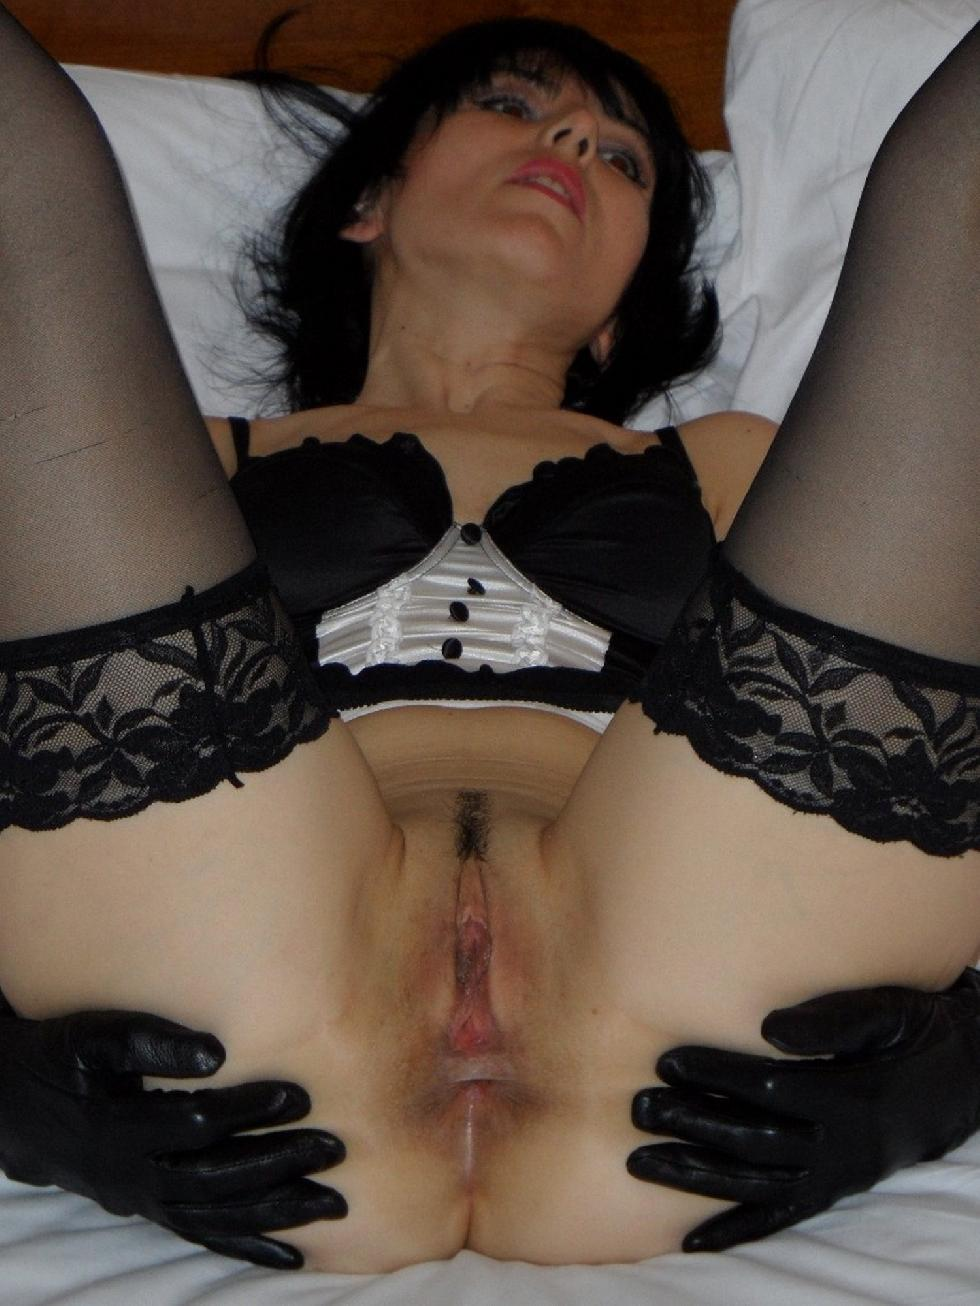 Sexy wife is spreading legs on bed - Sharon - 9